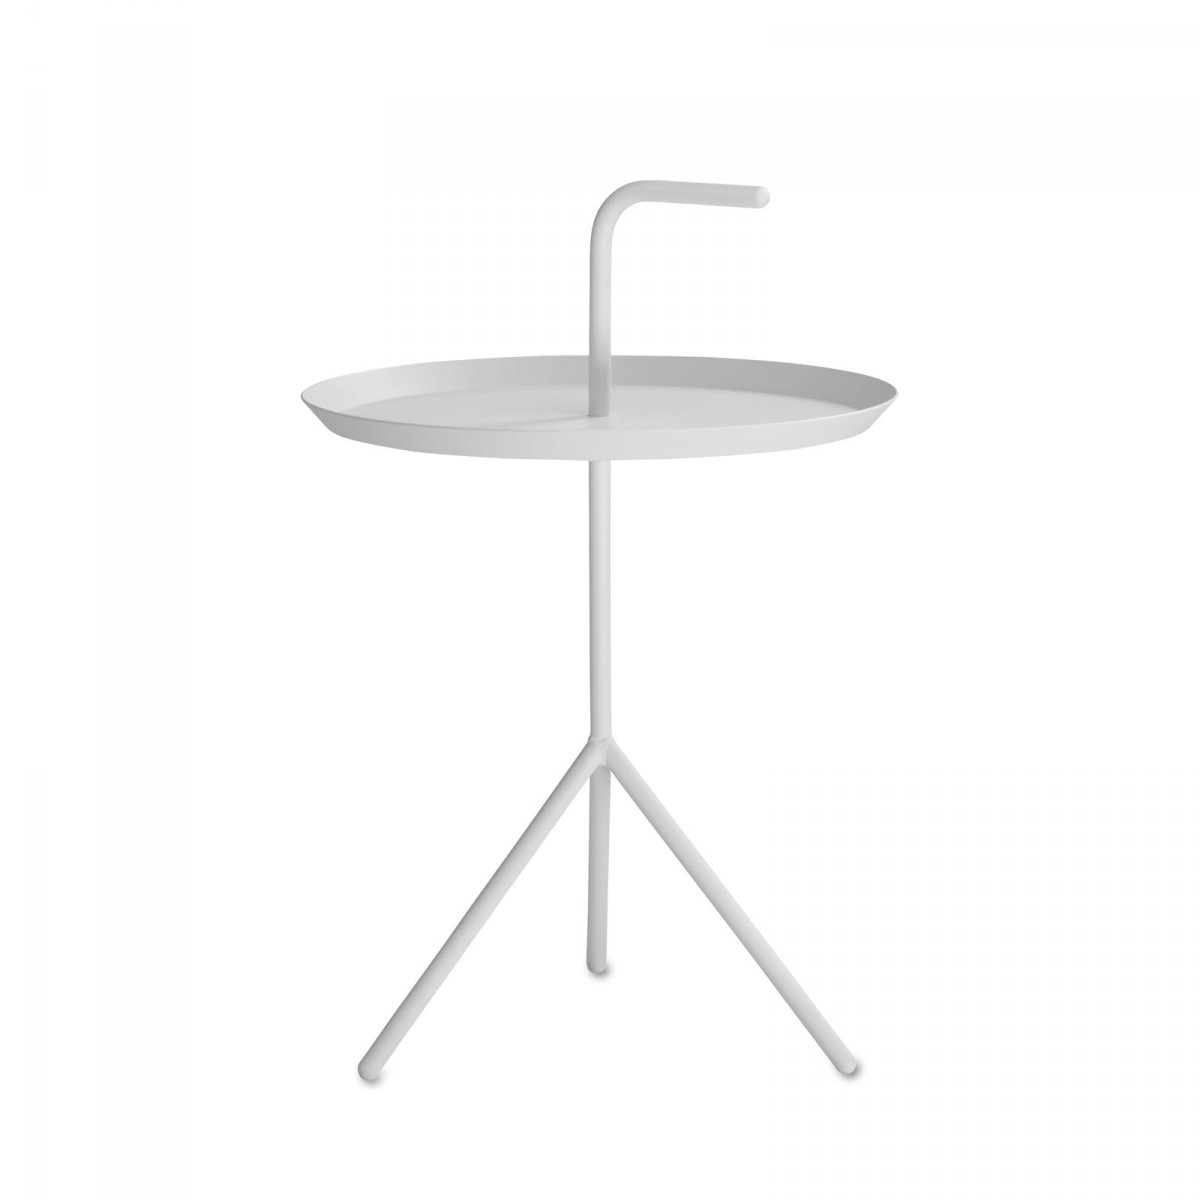 DLM side table, white.